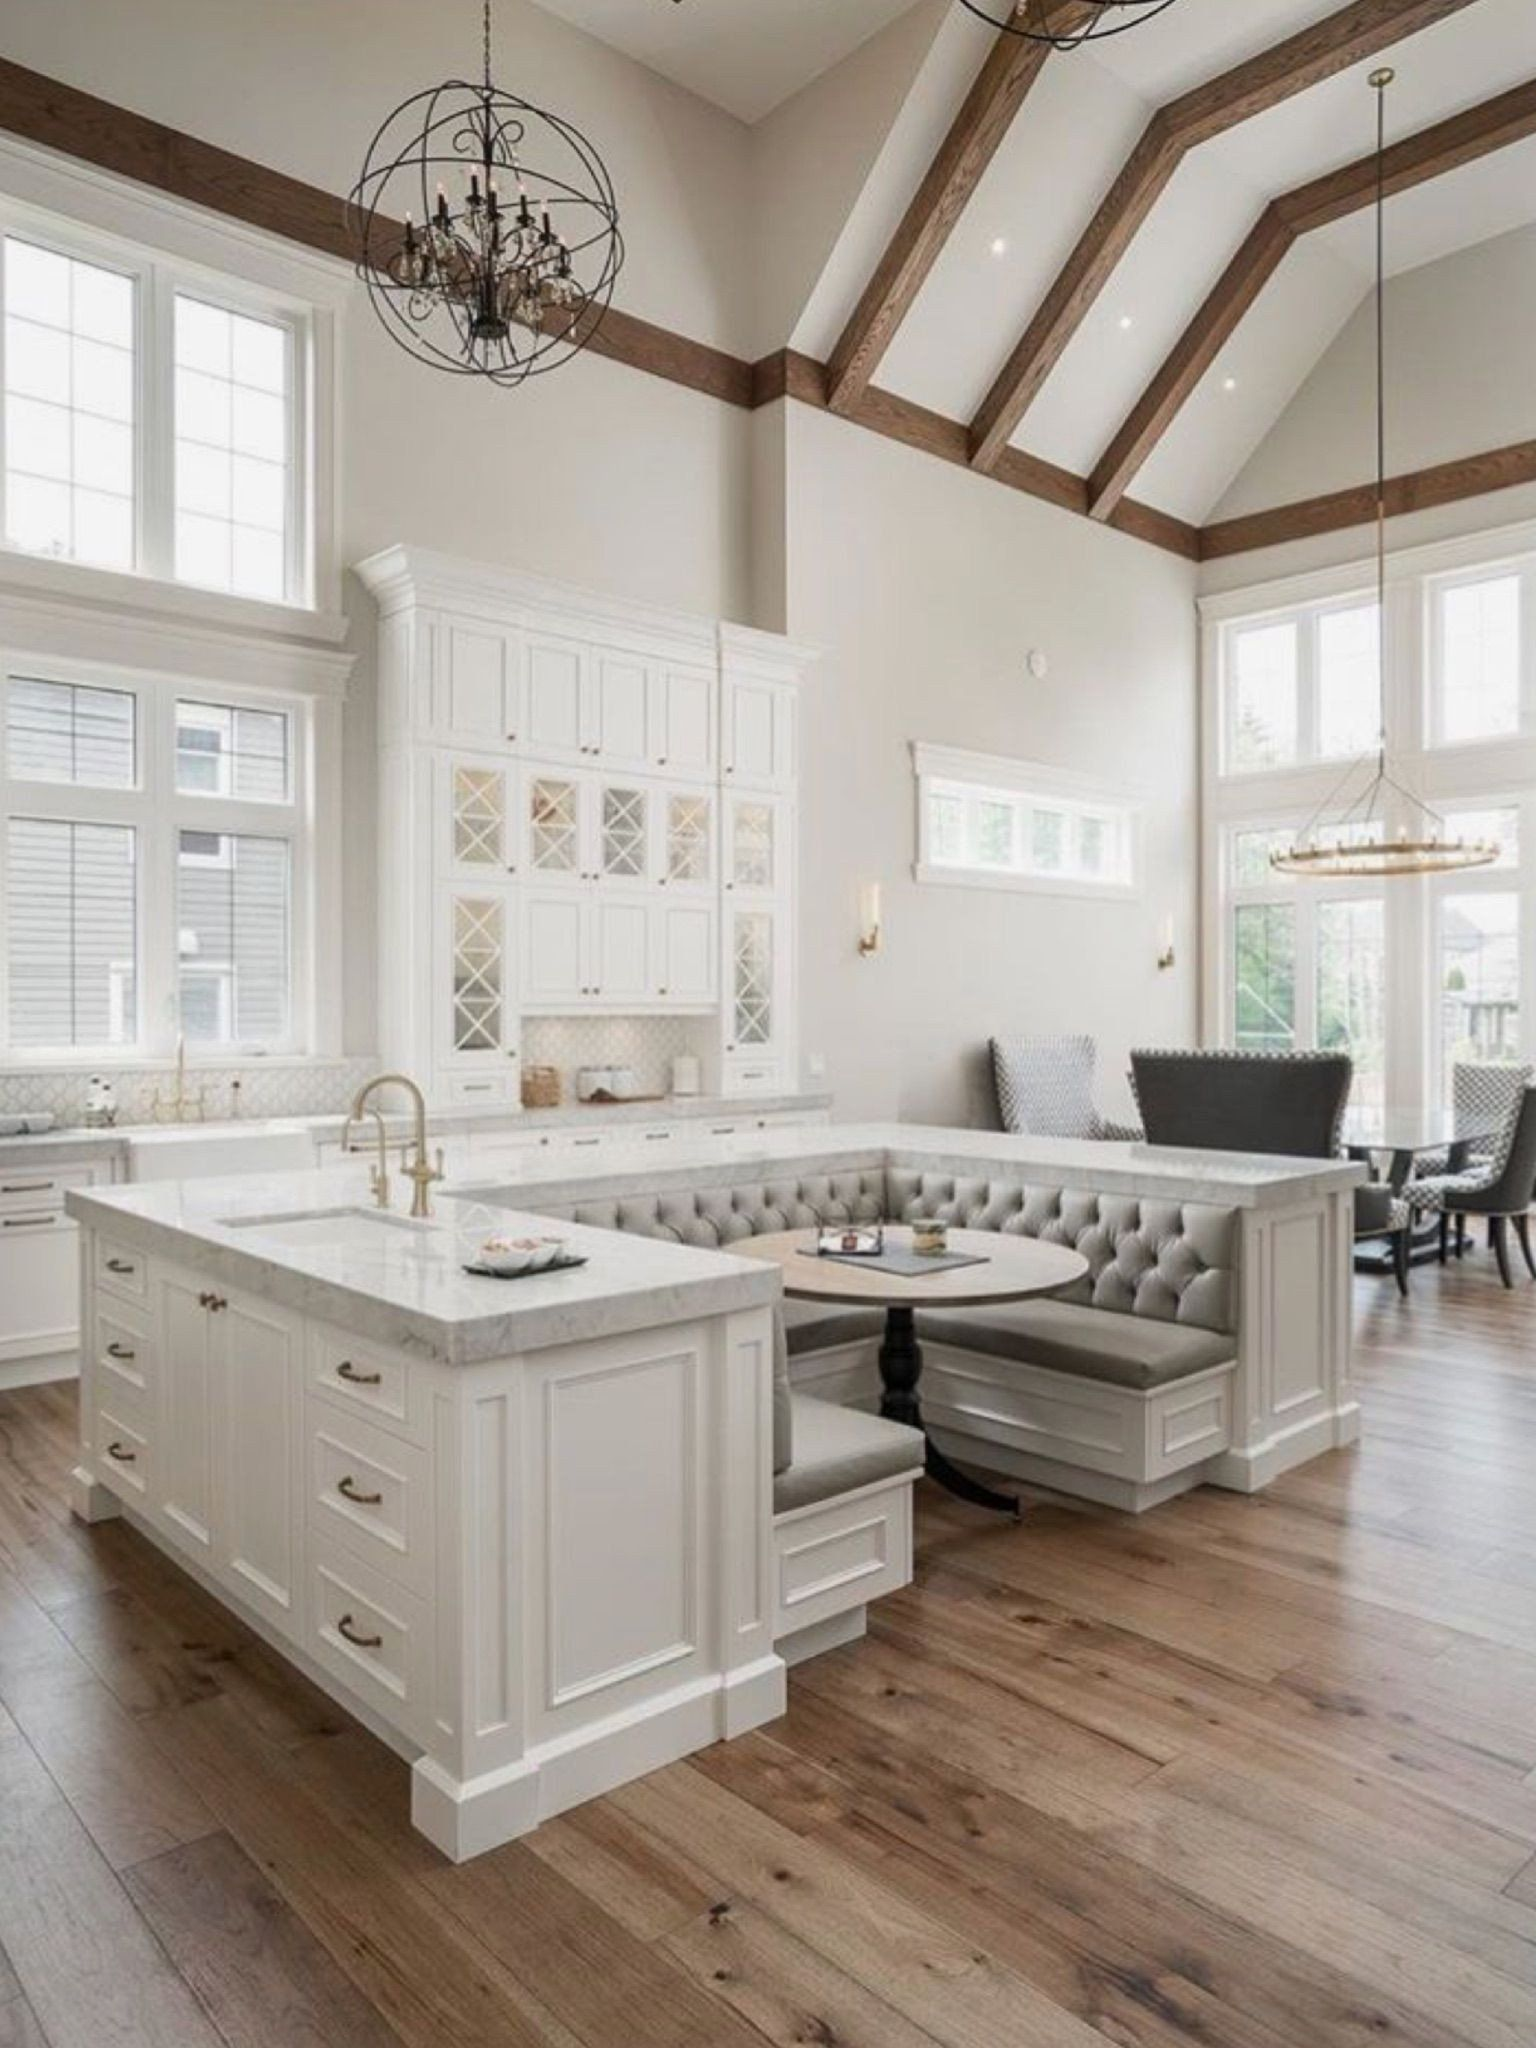 Kitchen Center Island With Seating Fresh Built In Breakfast Booth Nook In Center Of K Booth Seating In Kitchen Kitchen Island Bench Kitchen Island With Seating